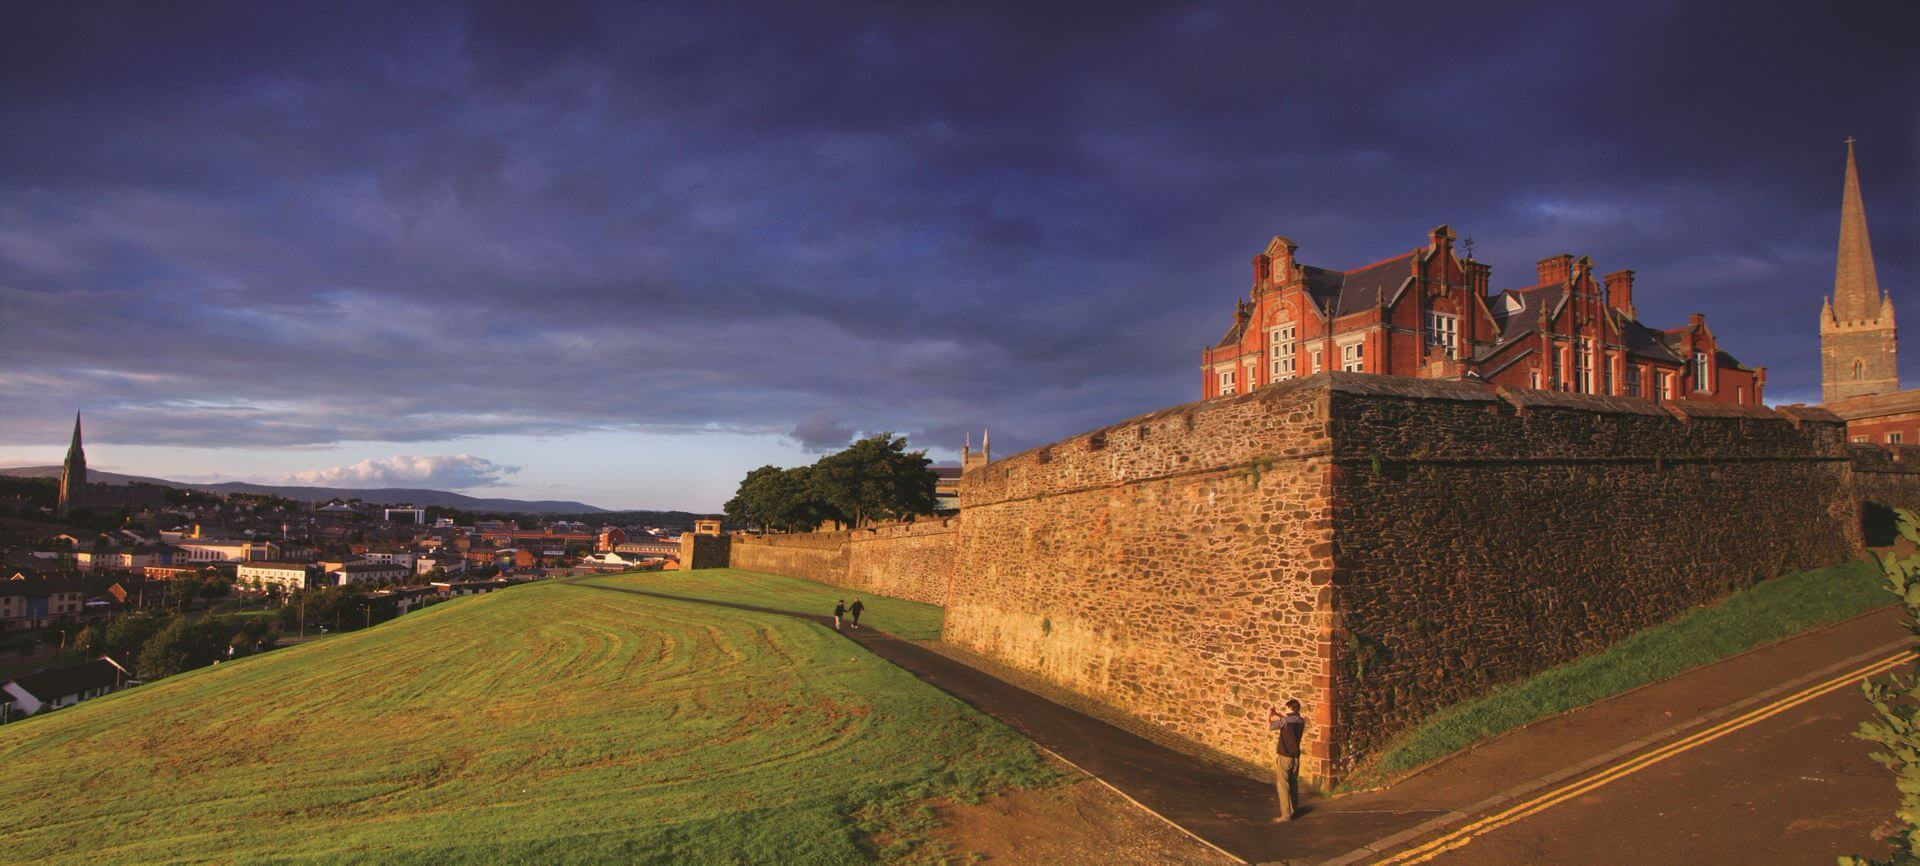 Walls of Derry & House